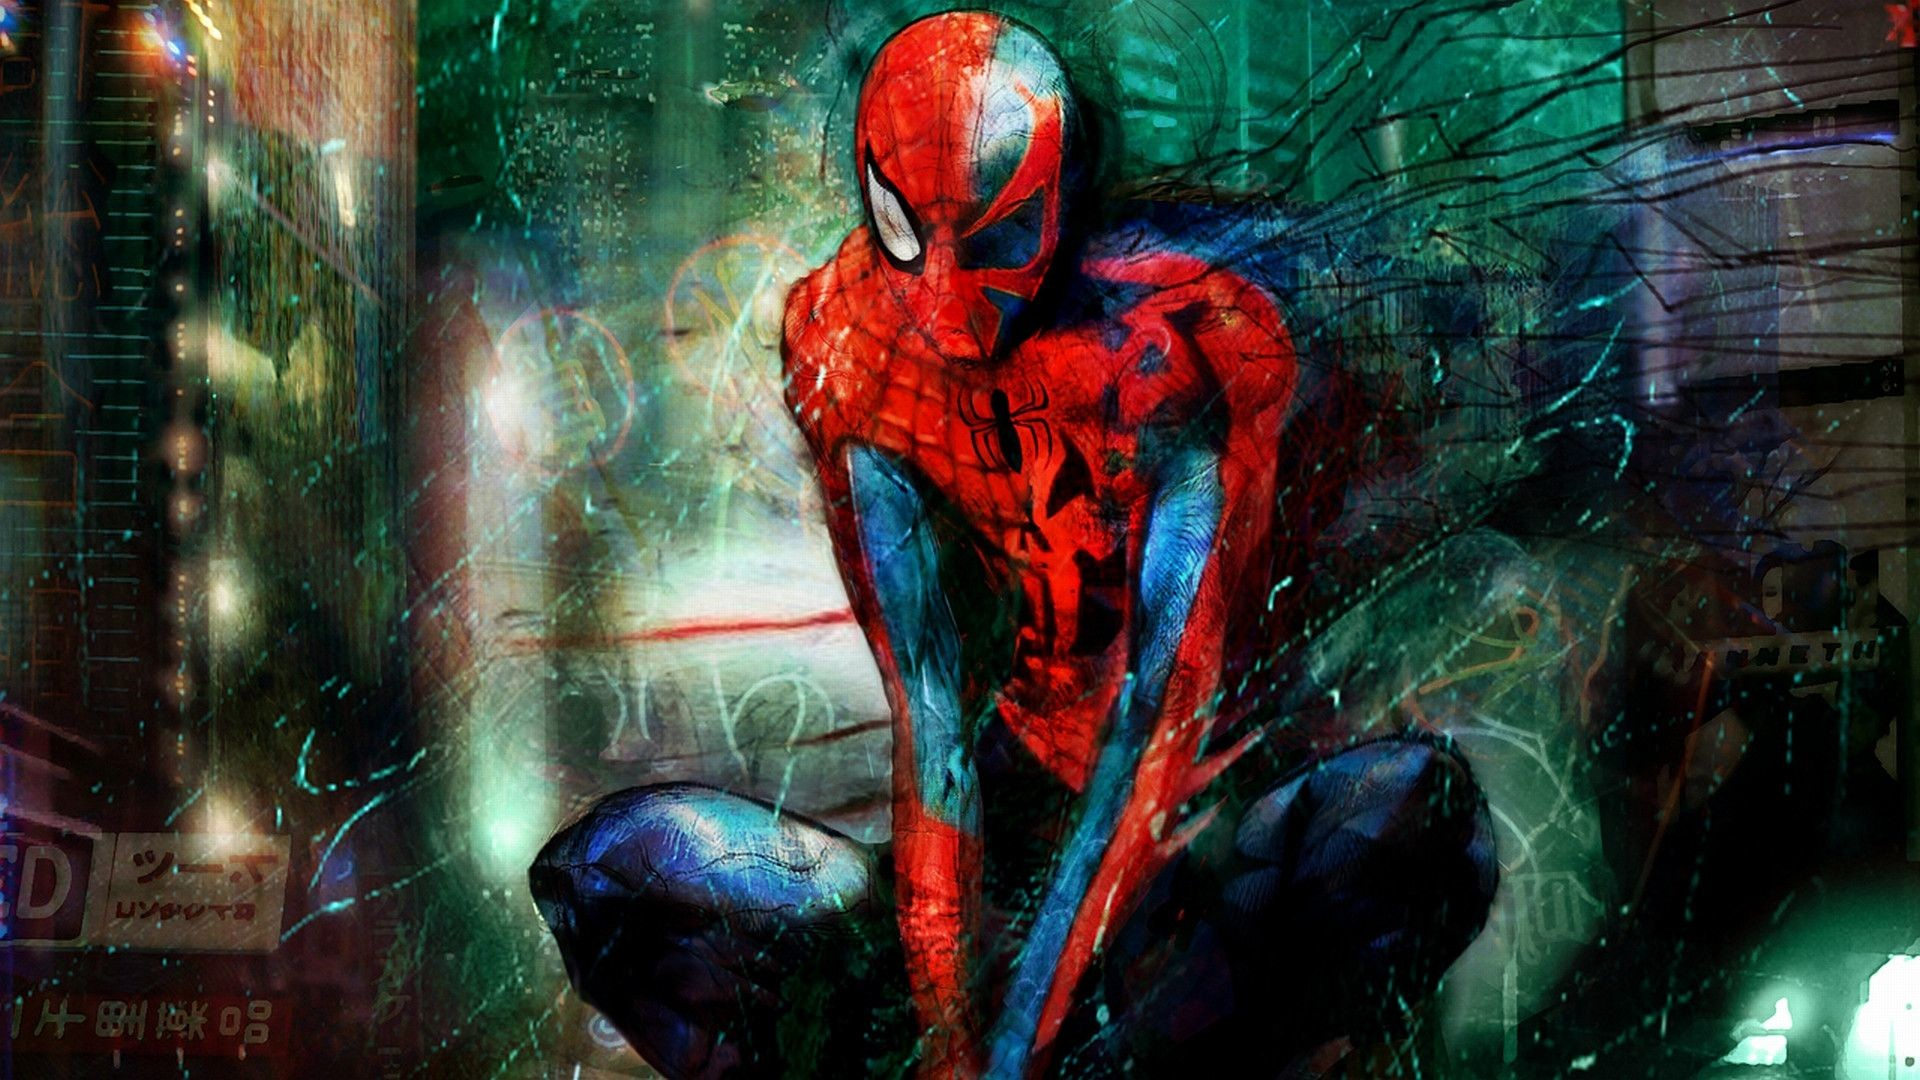 Spider Man 2099 Wallpapers – Wallpaper Cave